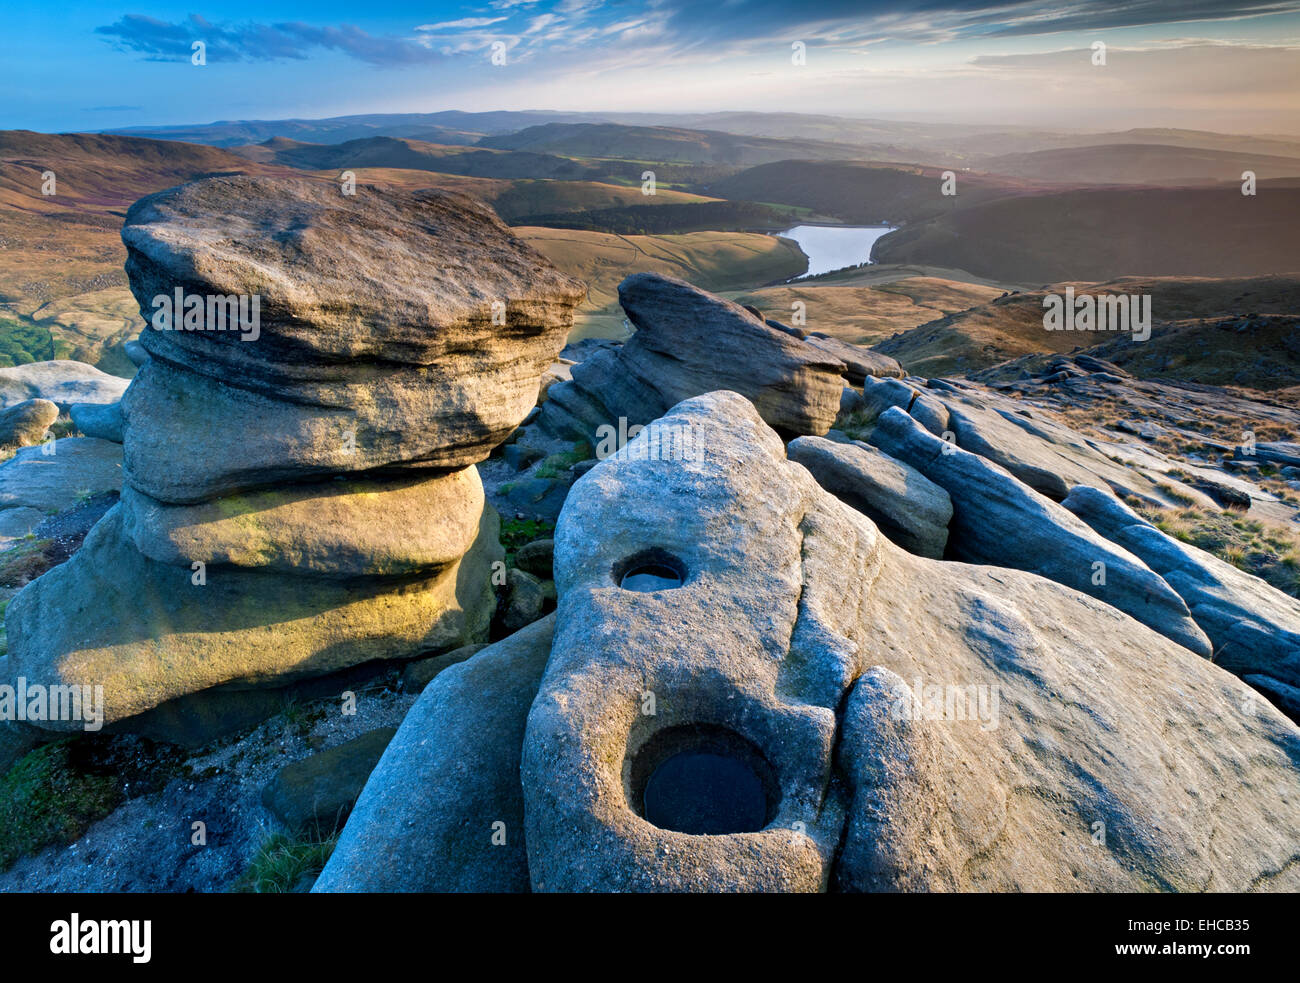 Rock Formations & Kinder Reservoir, Kinder Scout, Peak District National Park, Derbyshire, England, UK - Stock Image